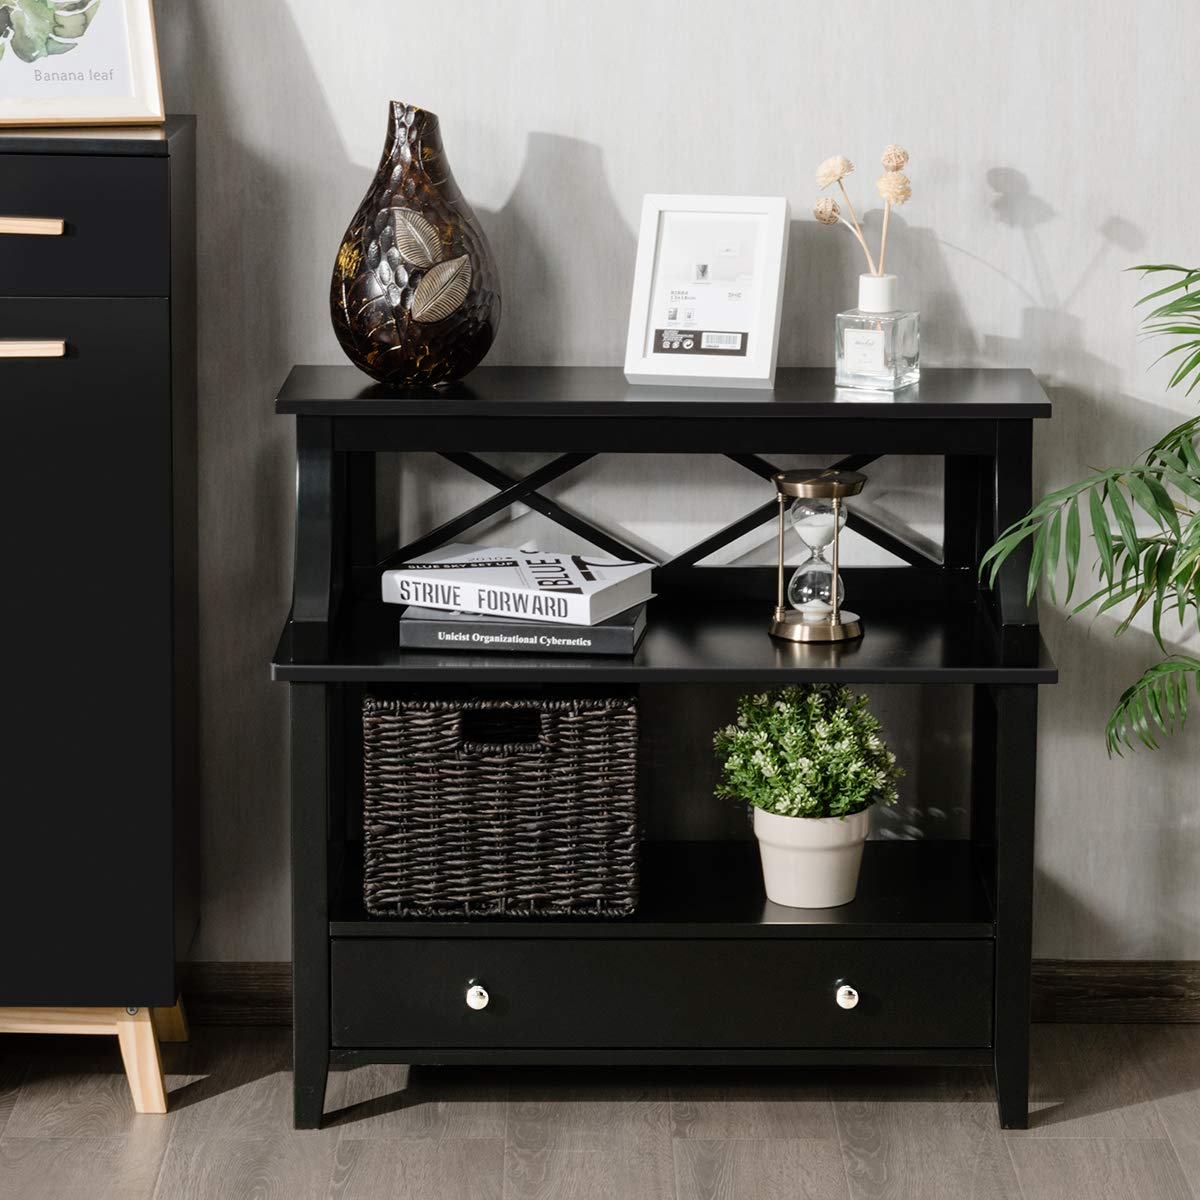 Giantex 3 Tier Console Table with a Large Drawer, Sofa Side Table with Storage Shelves, Entryway Hall Table Furniture, Display Rack Stand for Living Room Bedroom Study, Easy Assembly Black